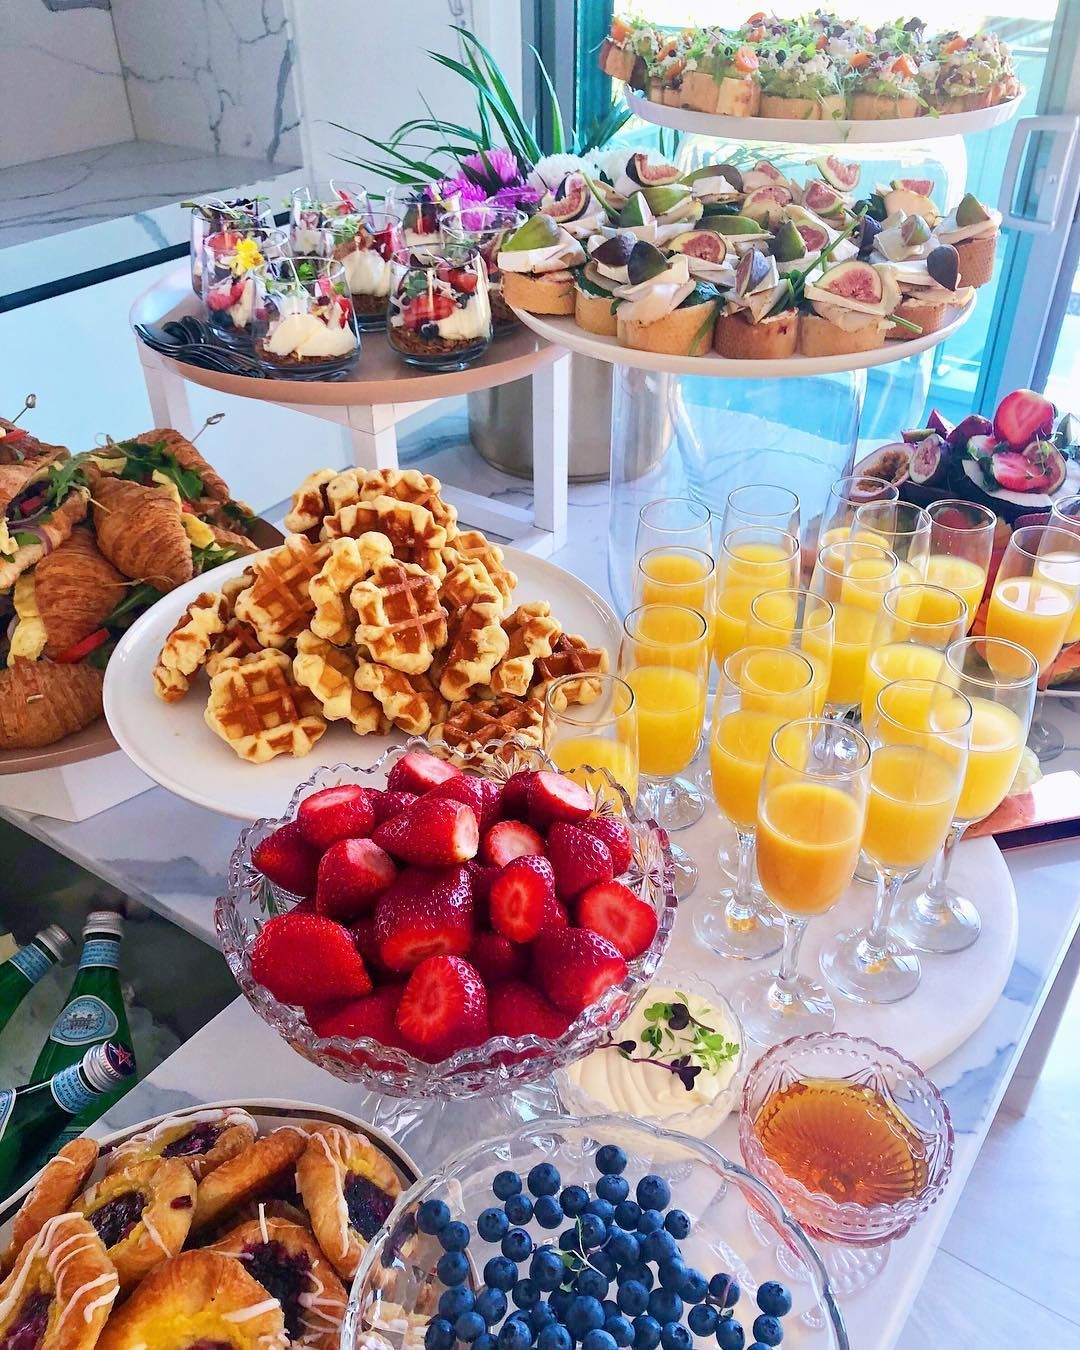 Brunch/lunch Ideas Before Getting Ready For The Afternoon